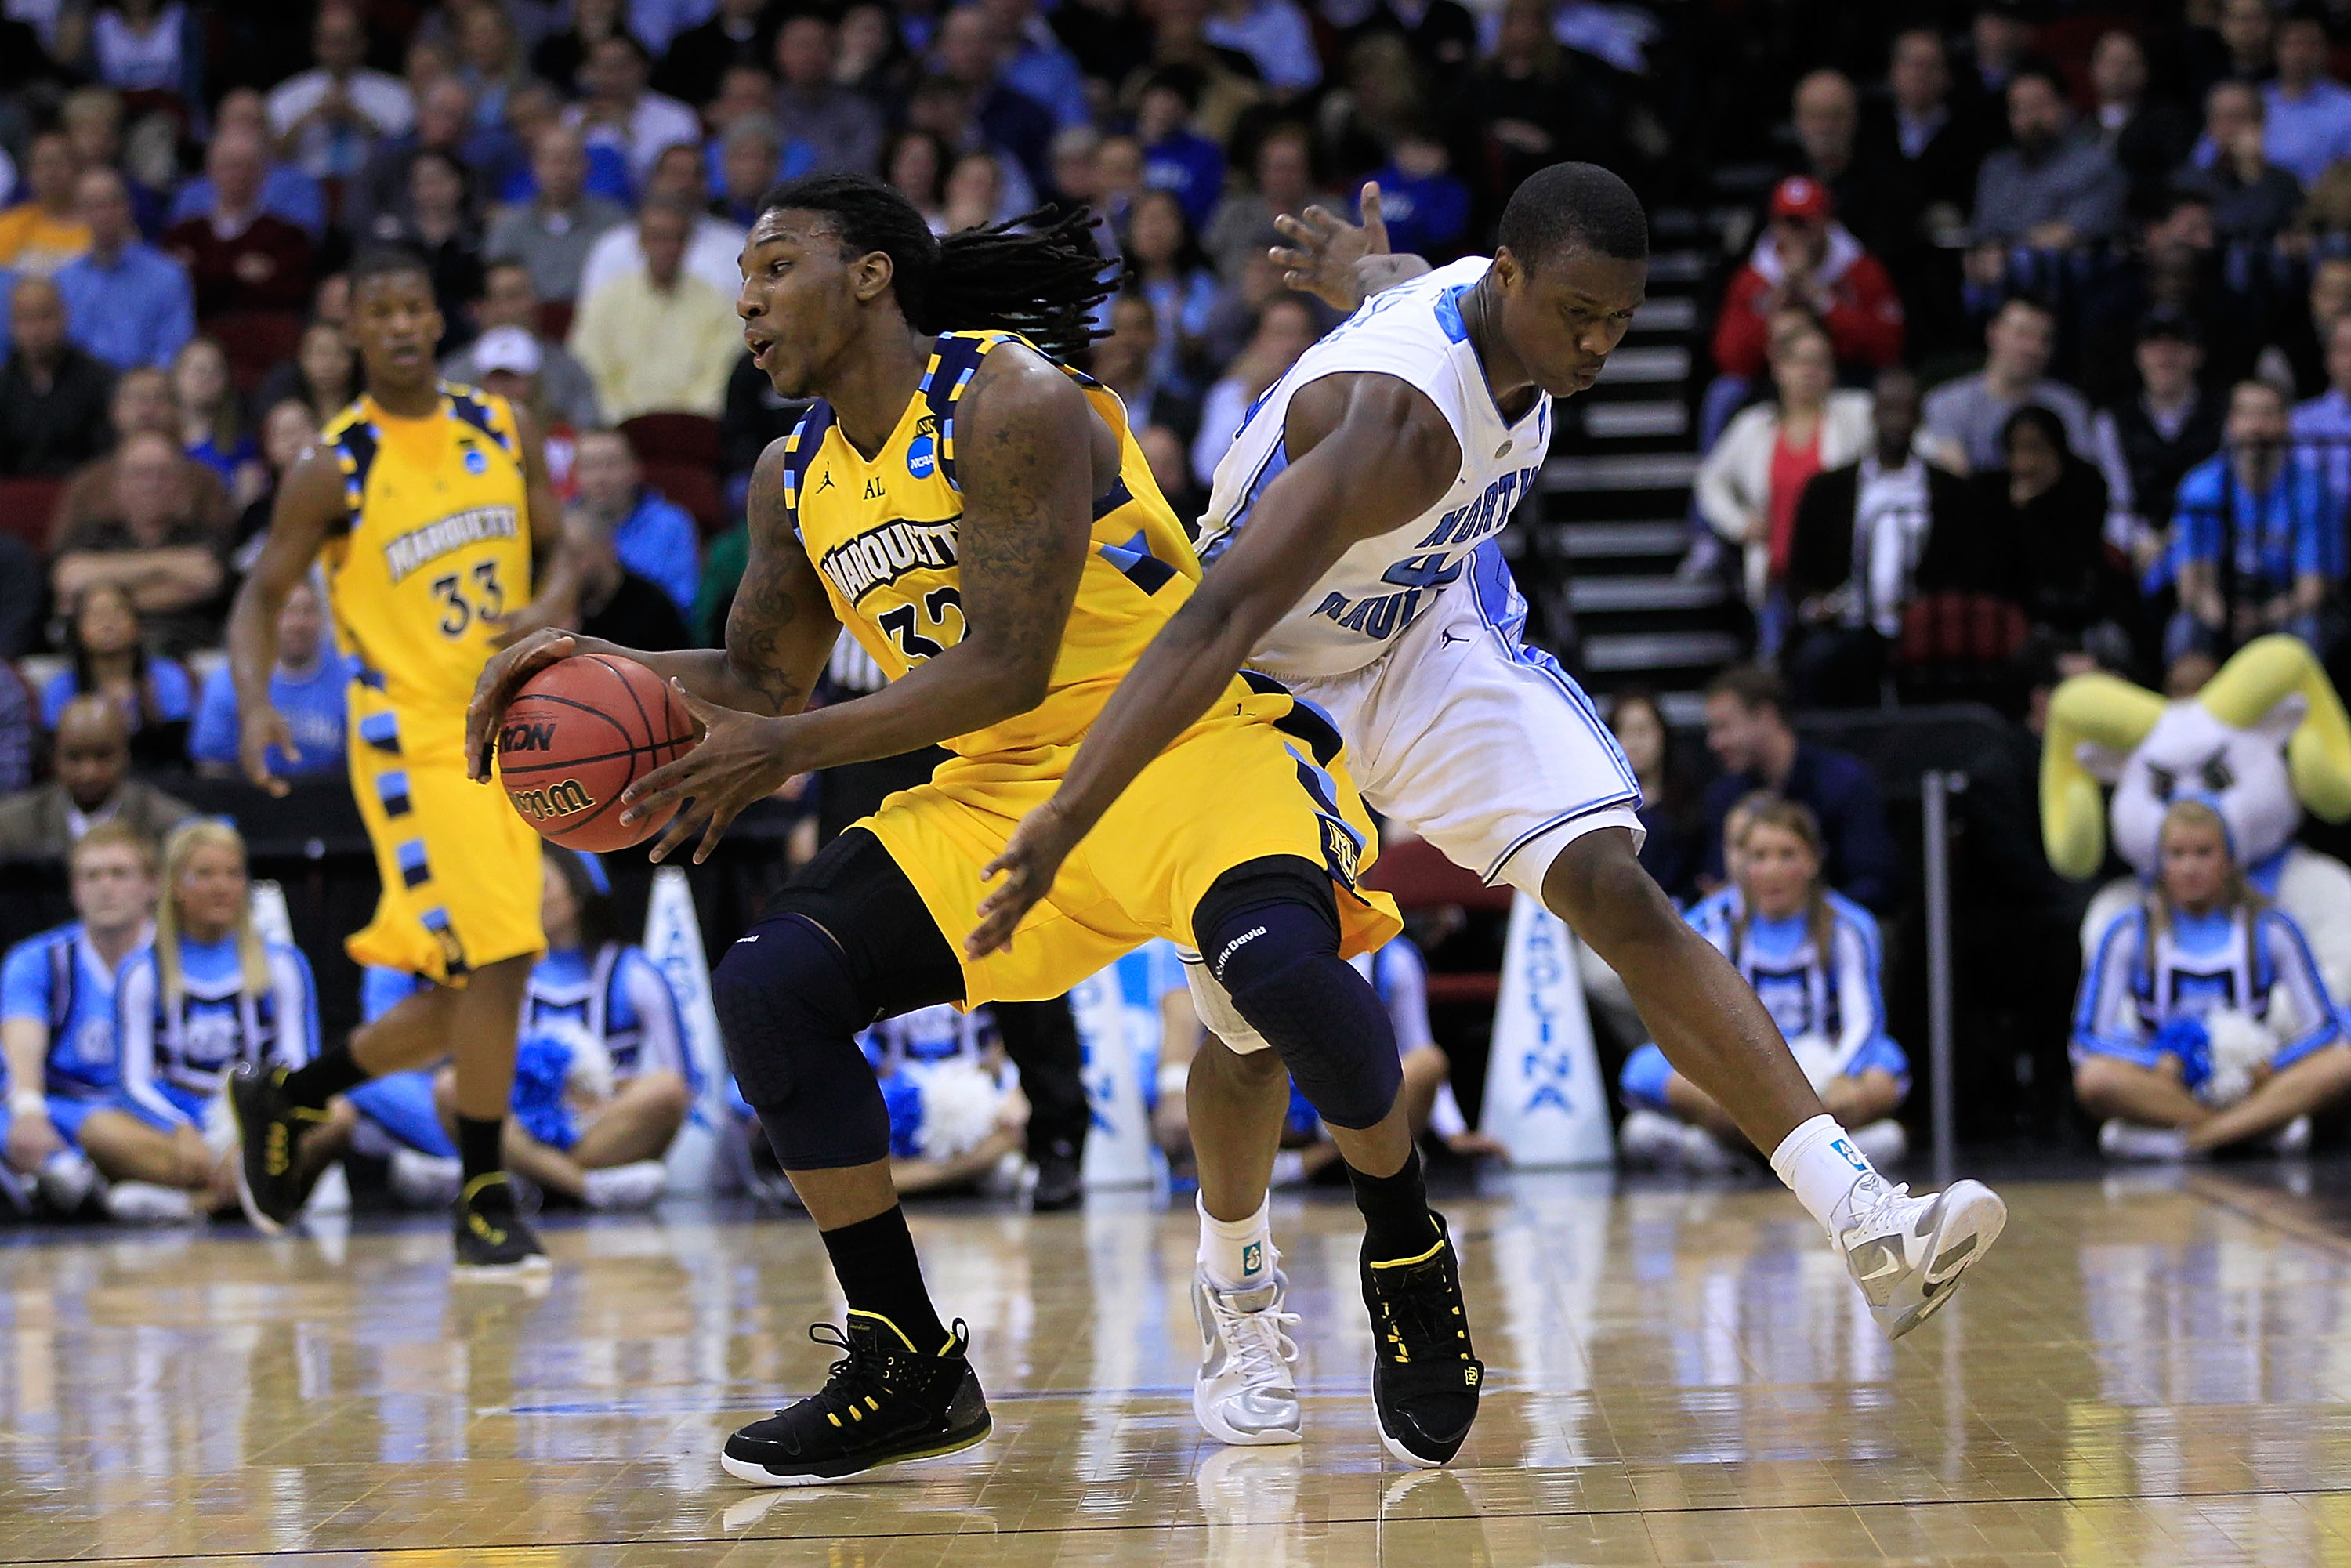 NEWARK, NJ - MARCH 25:  Jae Crowder #32 of the Marquette Golden Eagles in action against the North Carolina Tar Heels during the east regional semifinal of the 2011 NCAA Men's Basketball Tournament at the Prudential Center on March 25, 2011 in Newark, New